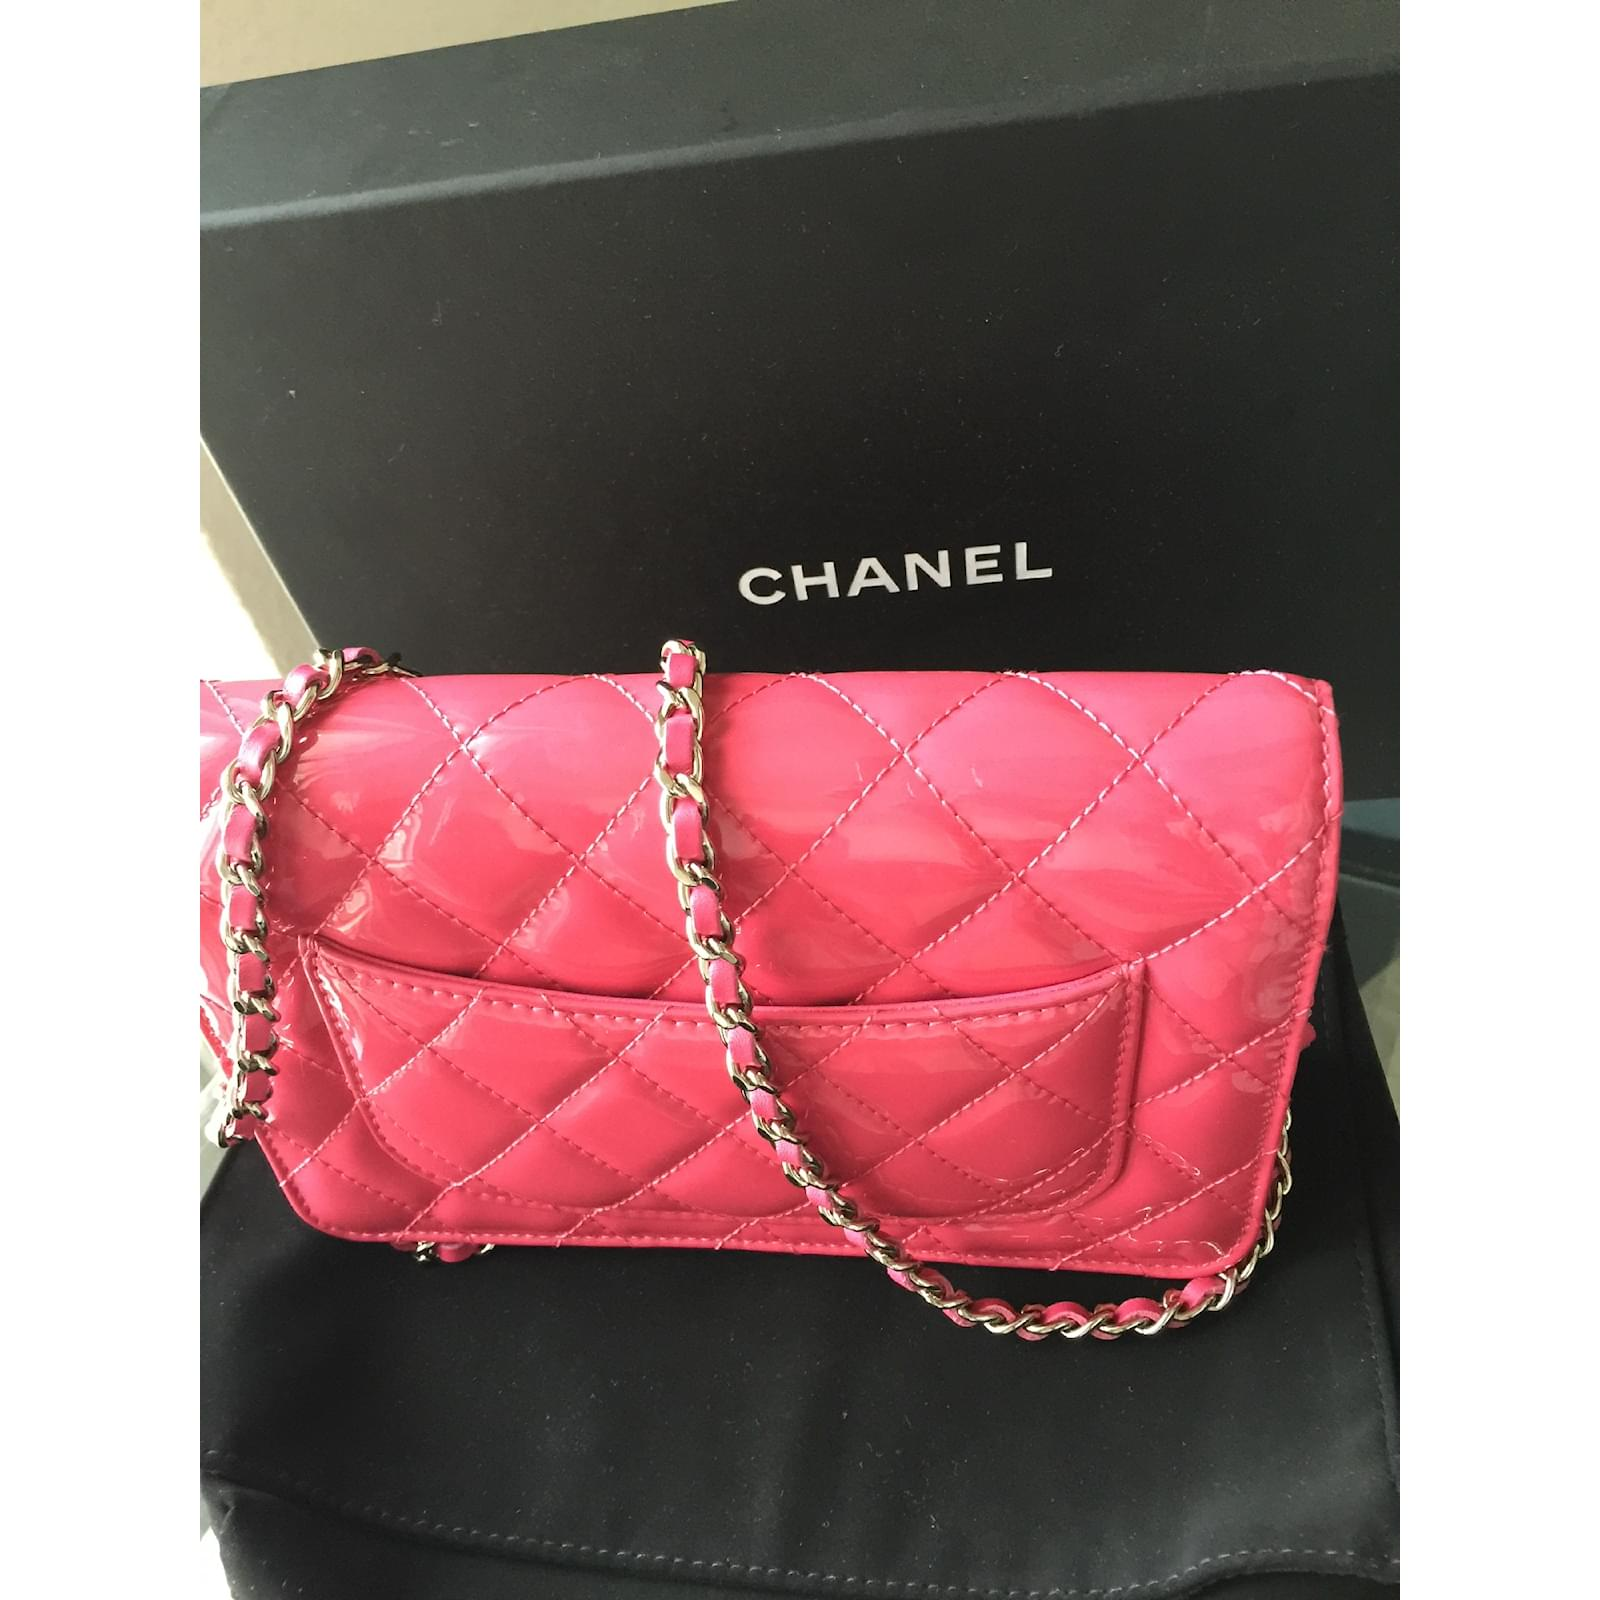 Chanel Pink Wallet On Chain Woc Clutch Bags Patent Leather Ref 16527 Joli Closet